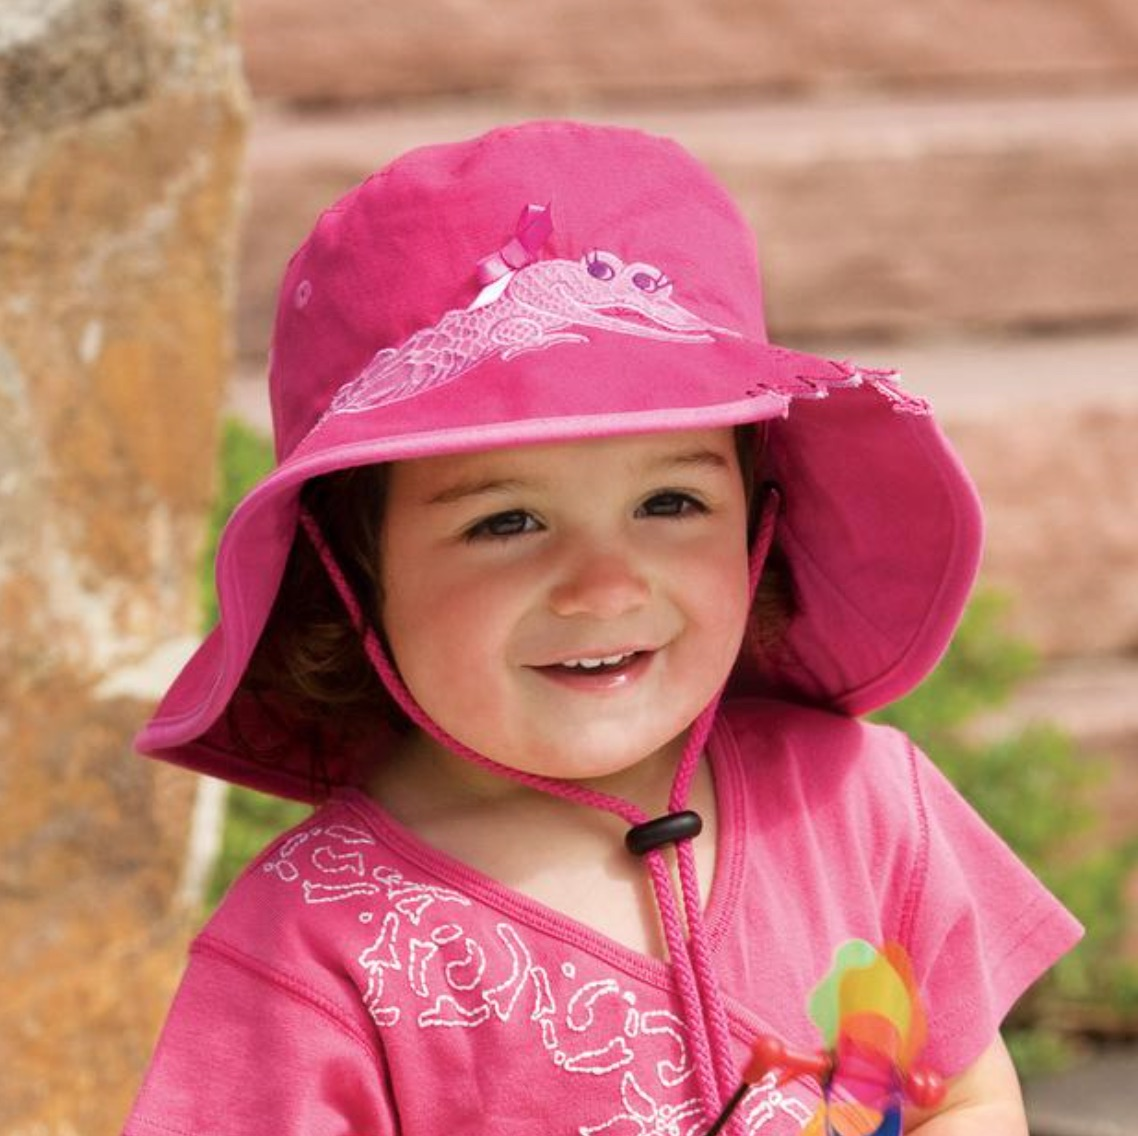 Infant sun protection clothing